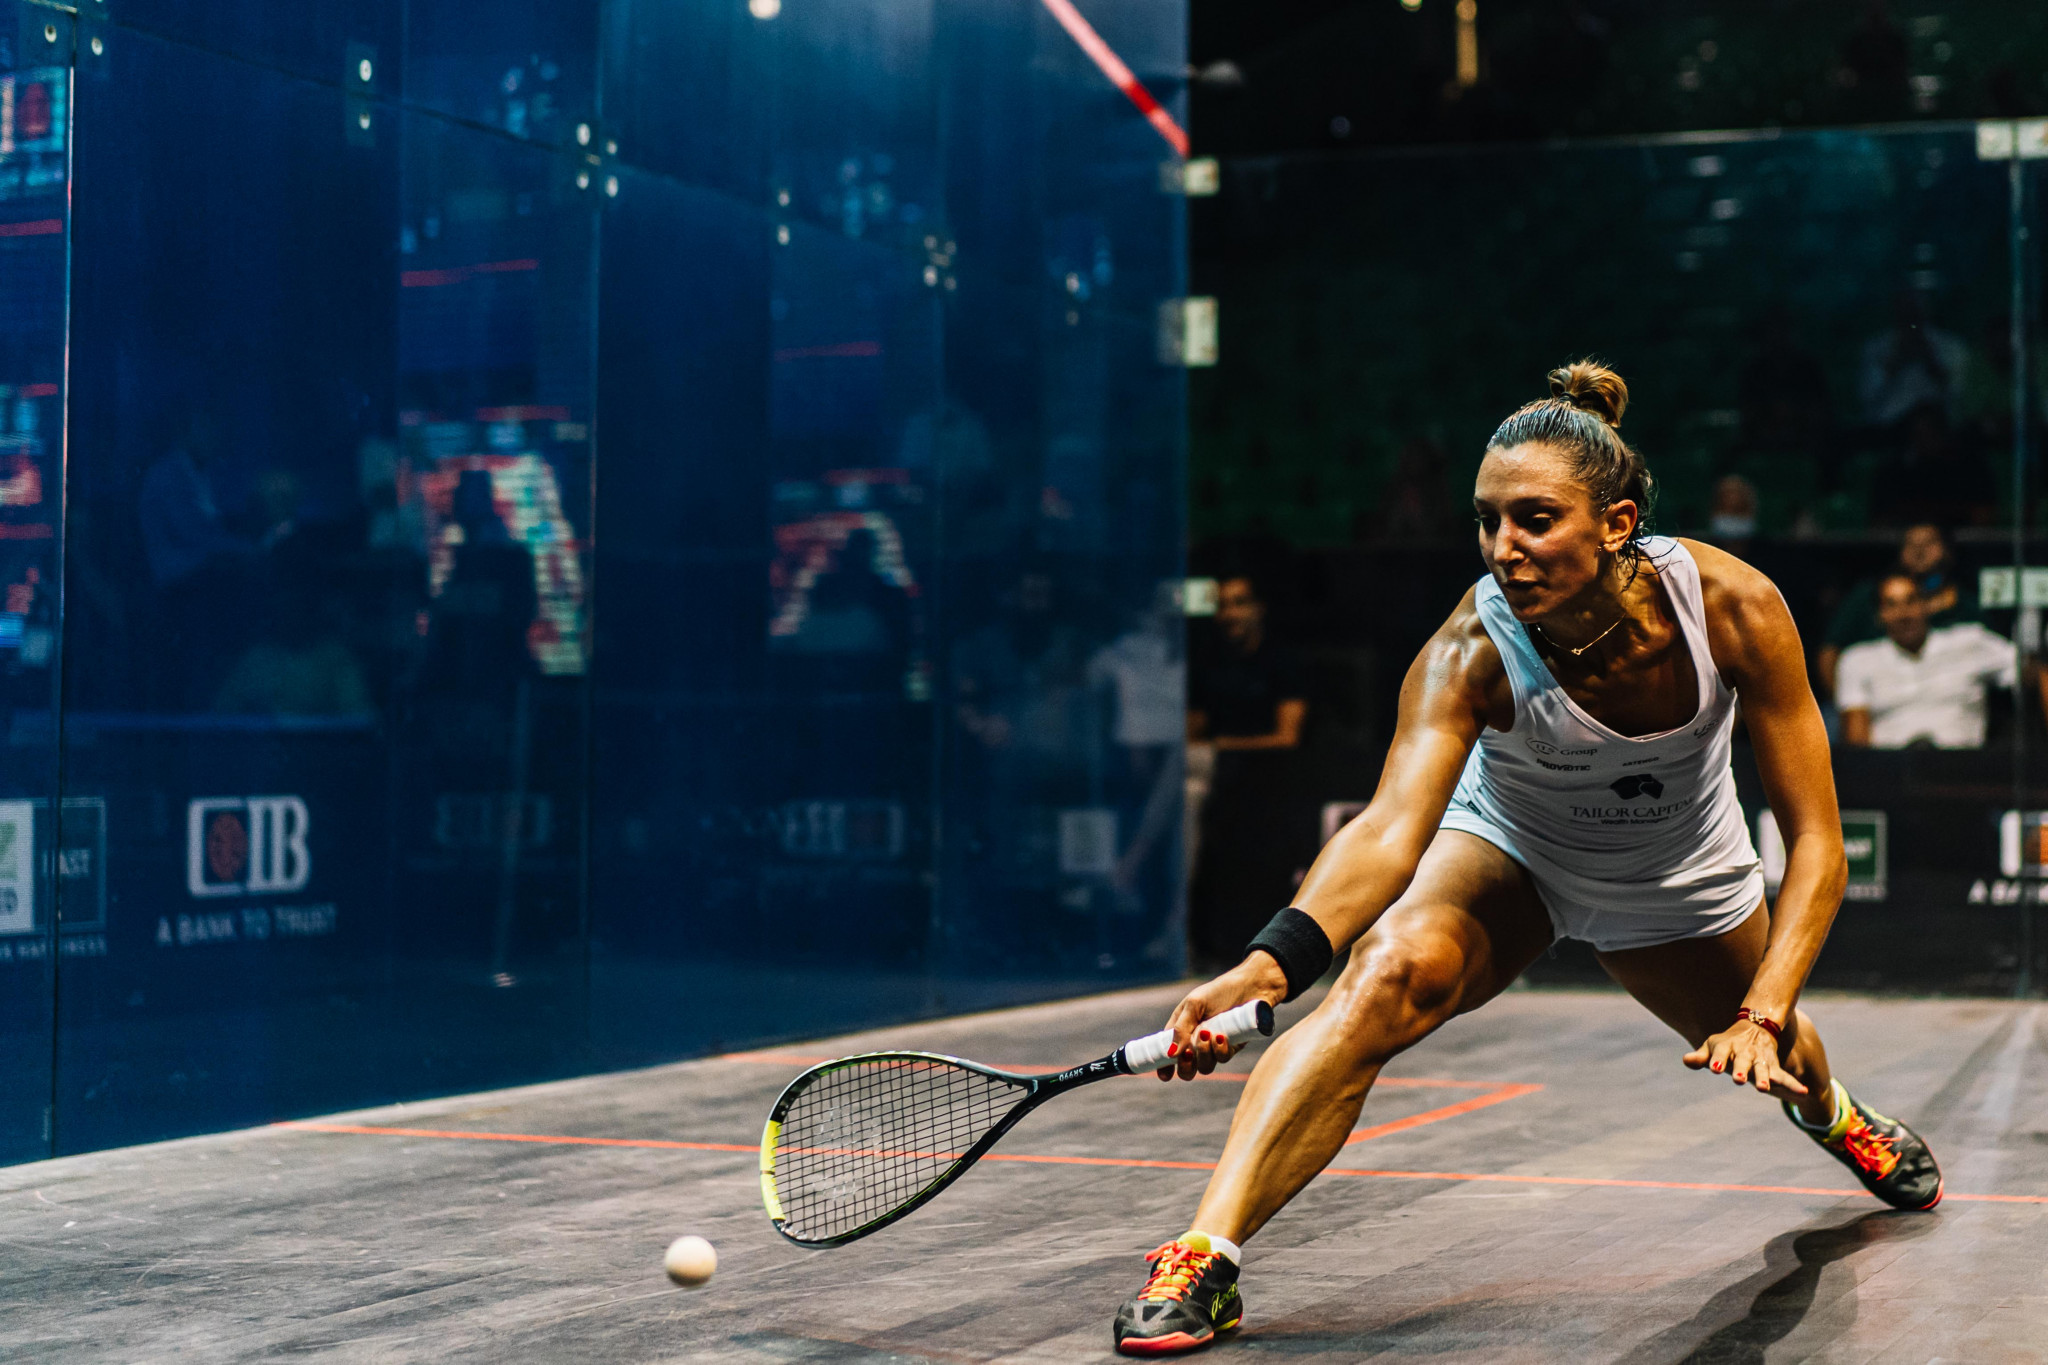 Farag and Serme both come from behind to reach Egyptian Open quarter-finals